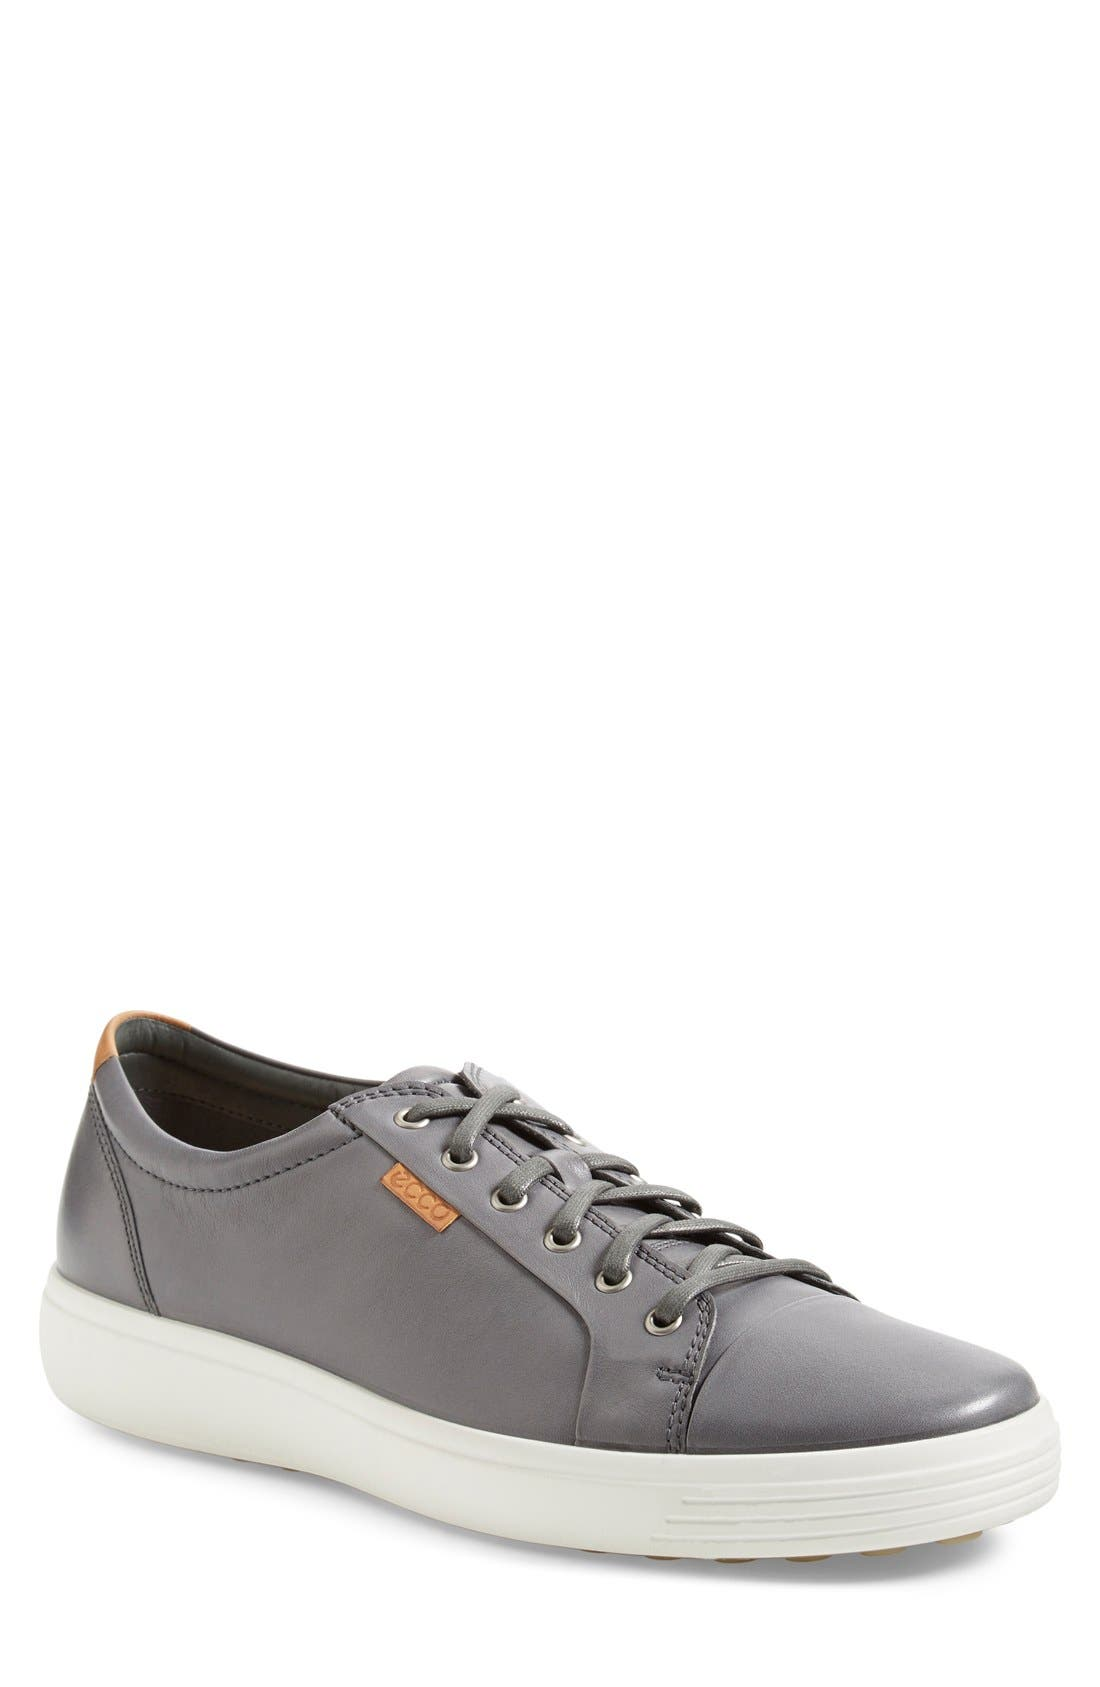 Soft VII Lace-Up Sneaker,                             Main thumbnail 14, color,